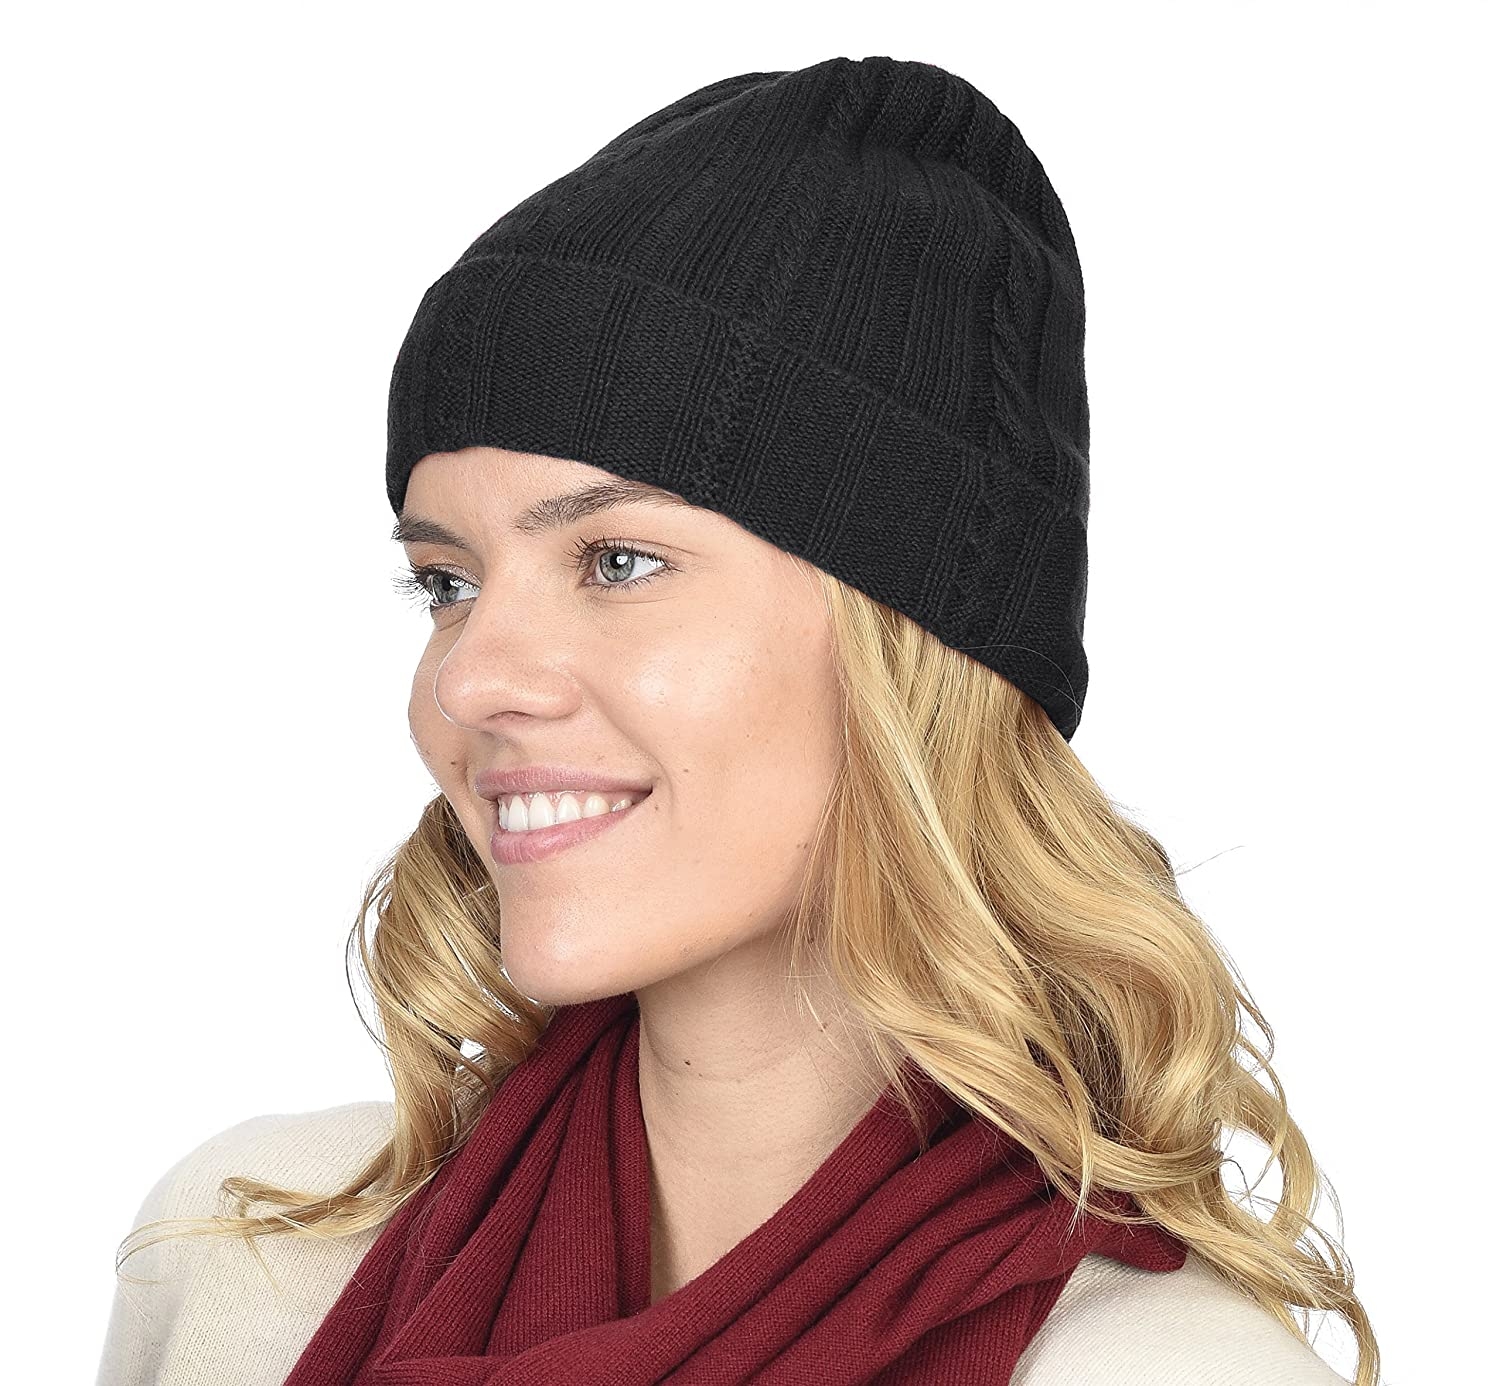 df3a0e8e6 State Cashmere 100% Pure Cashmere Cable Knit Beanie Hat - Ultimate  Soft,Warm and Cozy